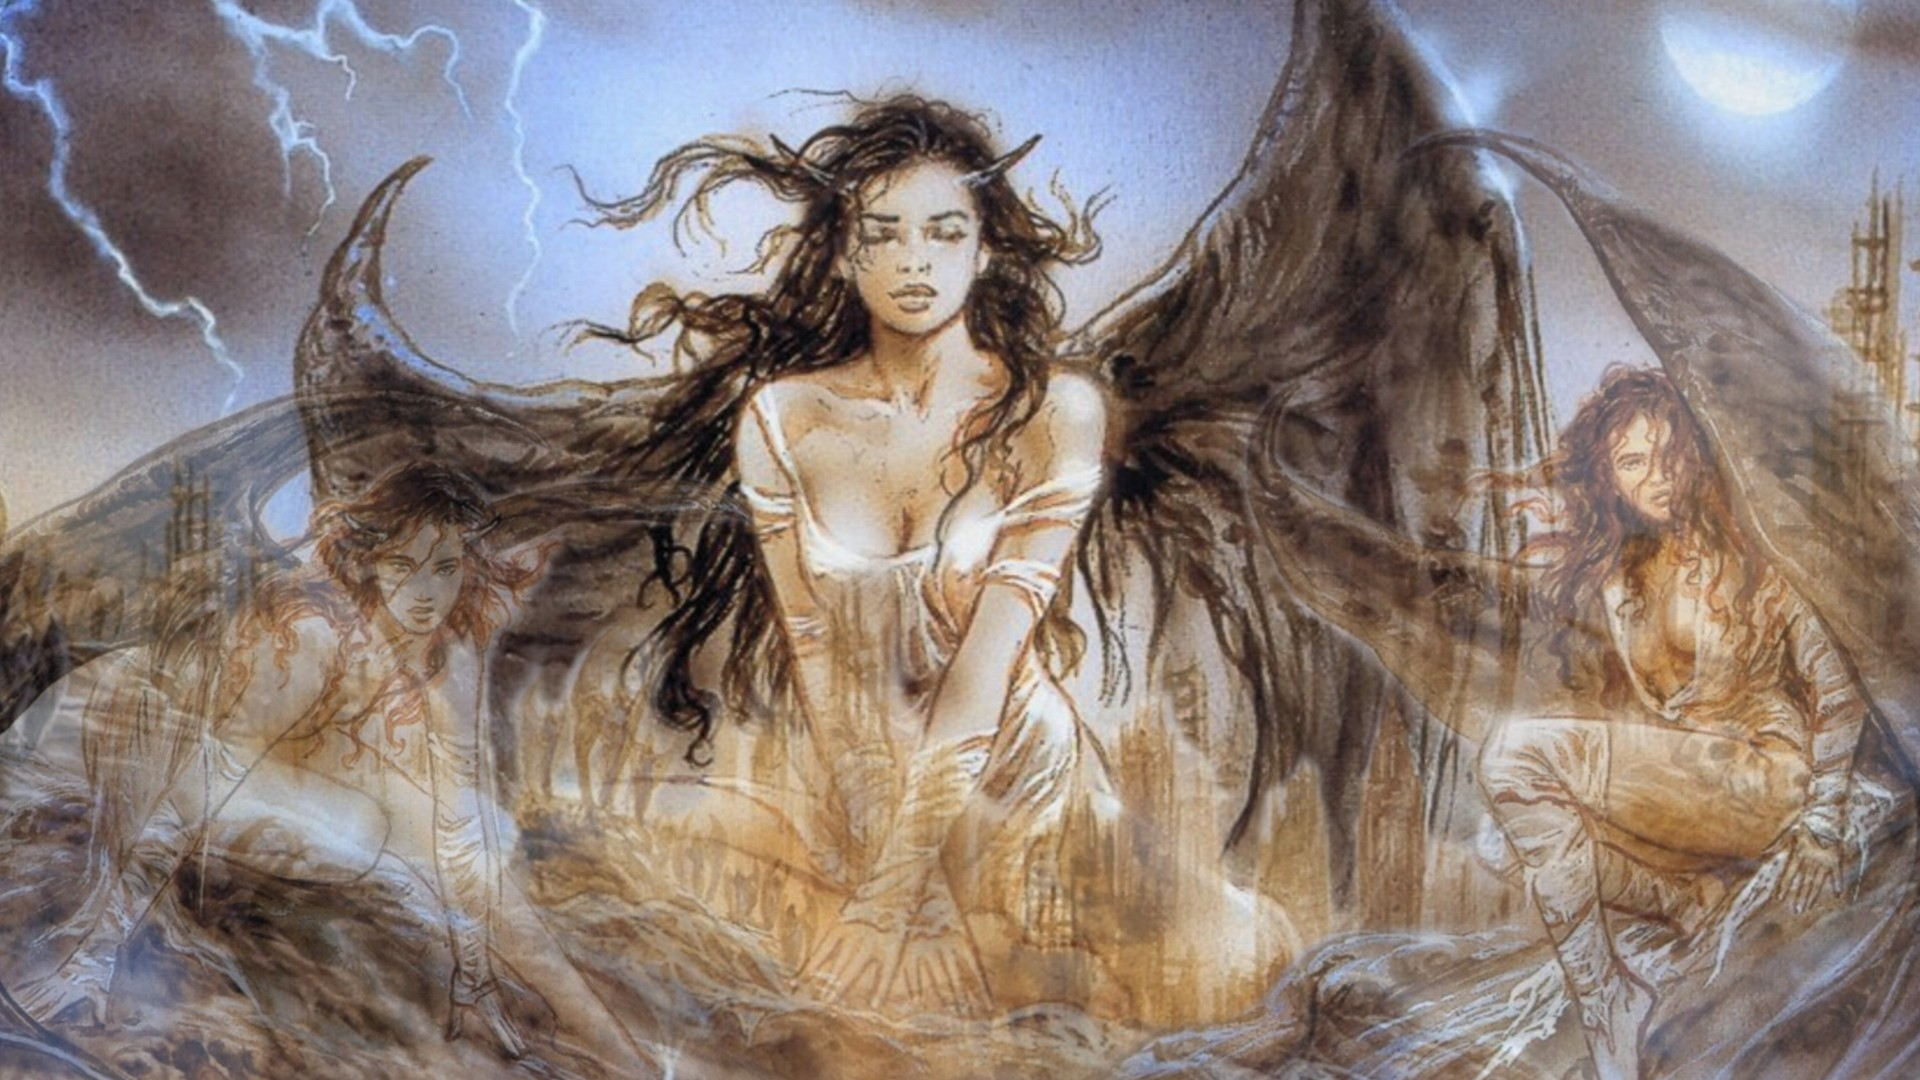 1920x1080 luis royo prohibited book - Google Search